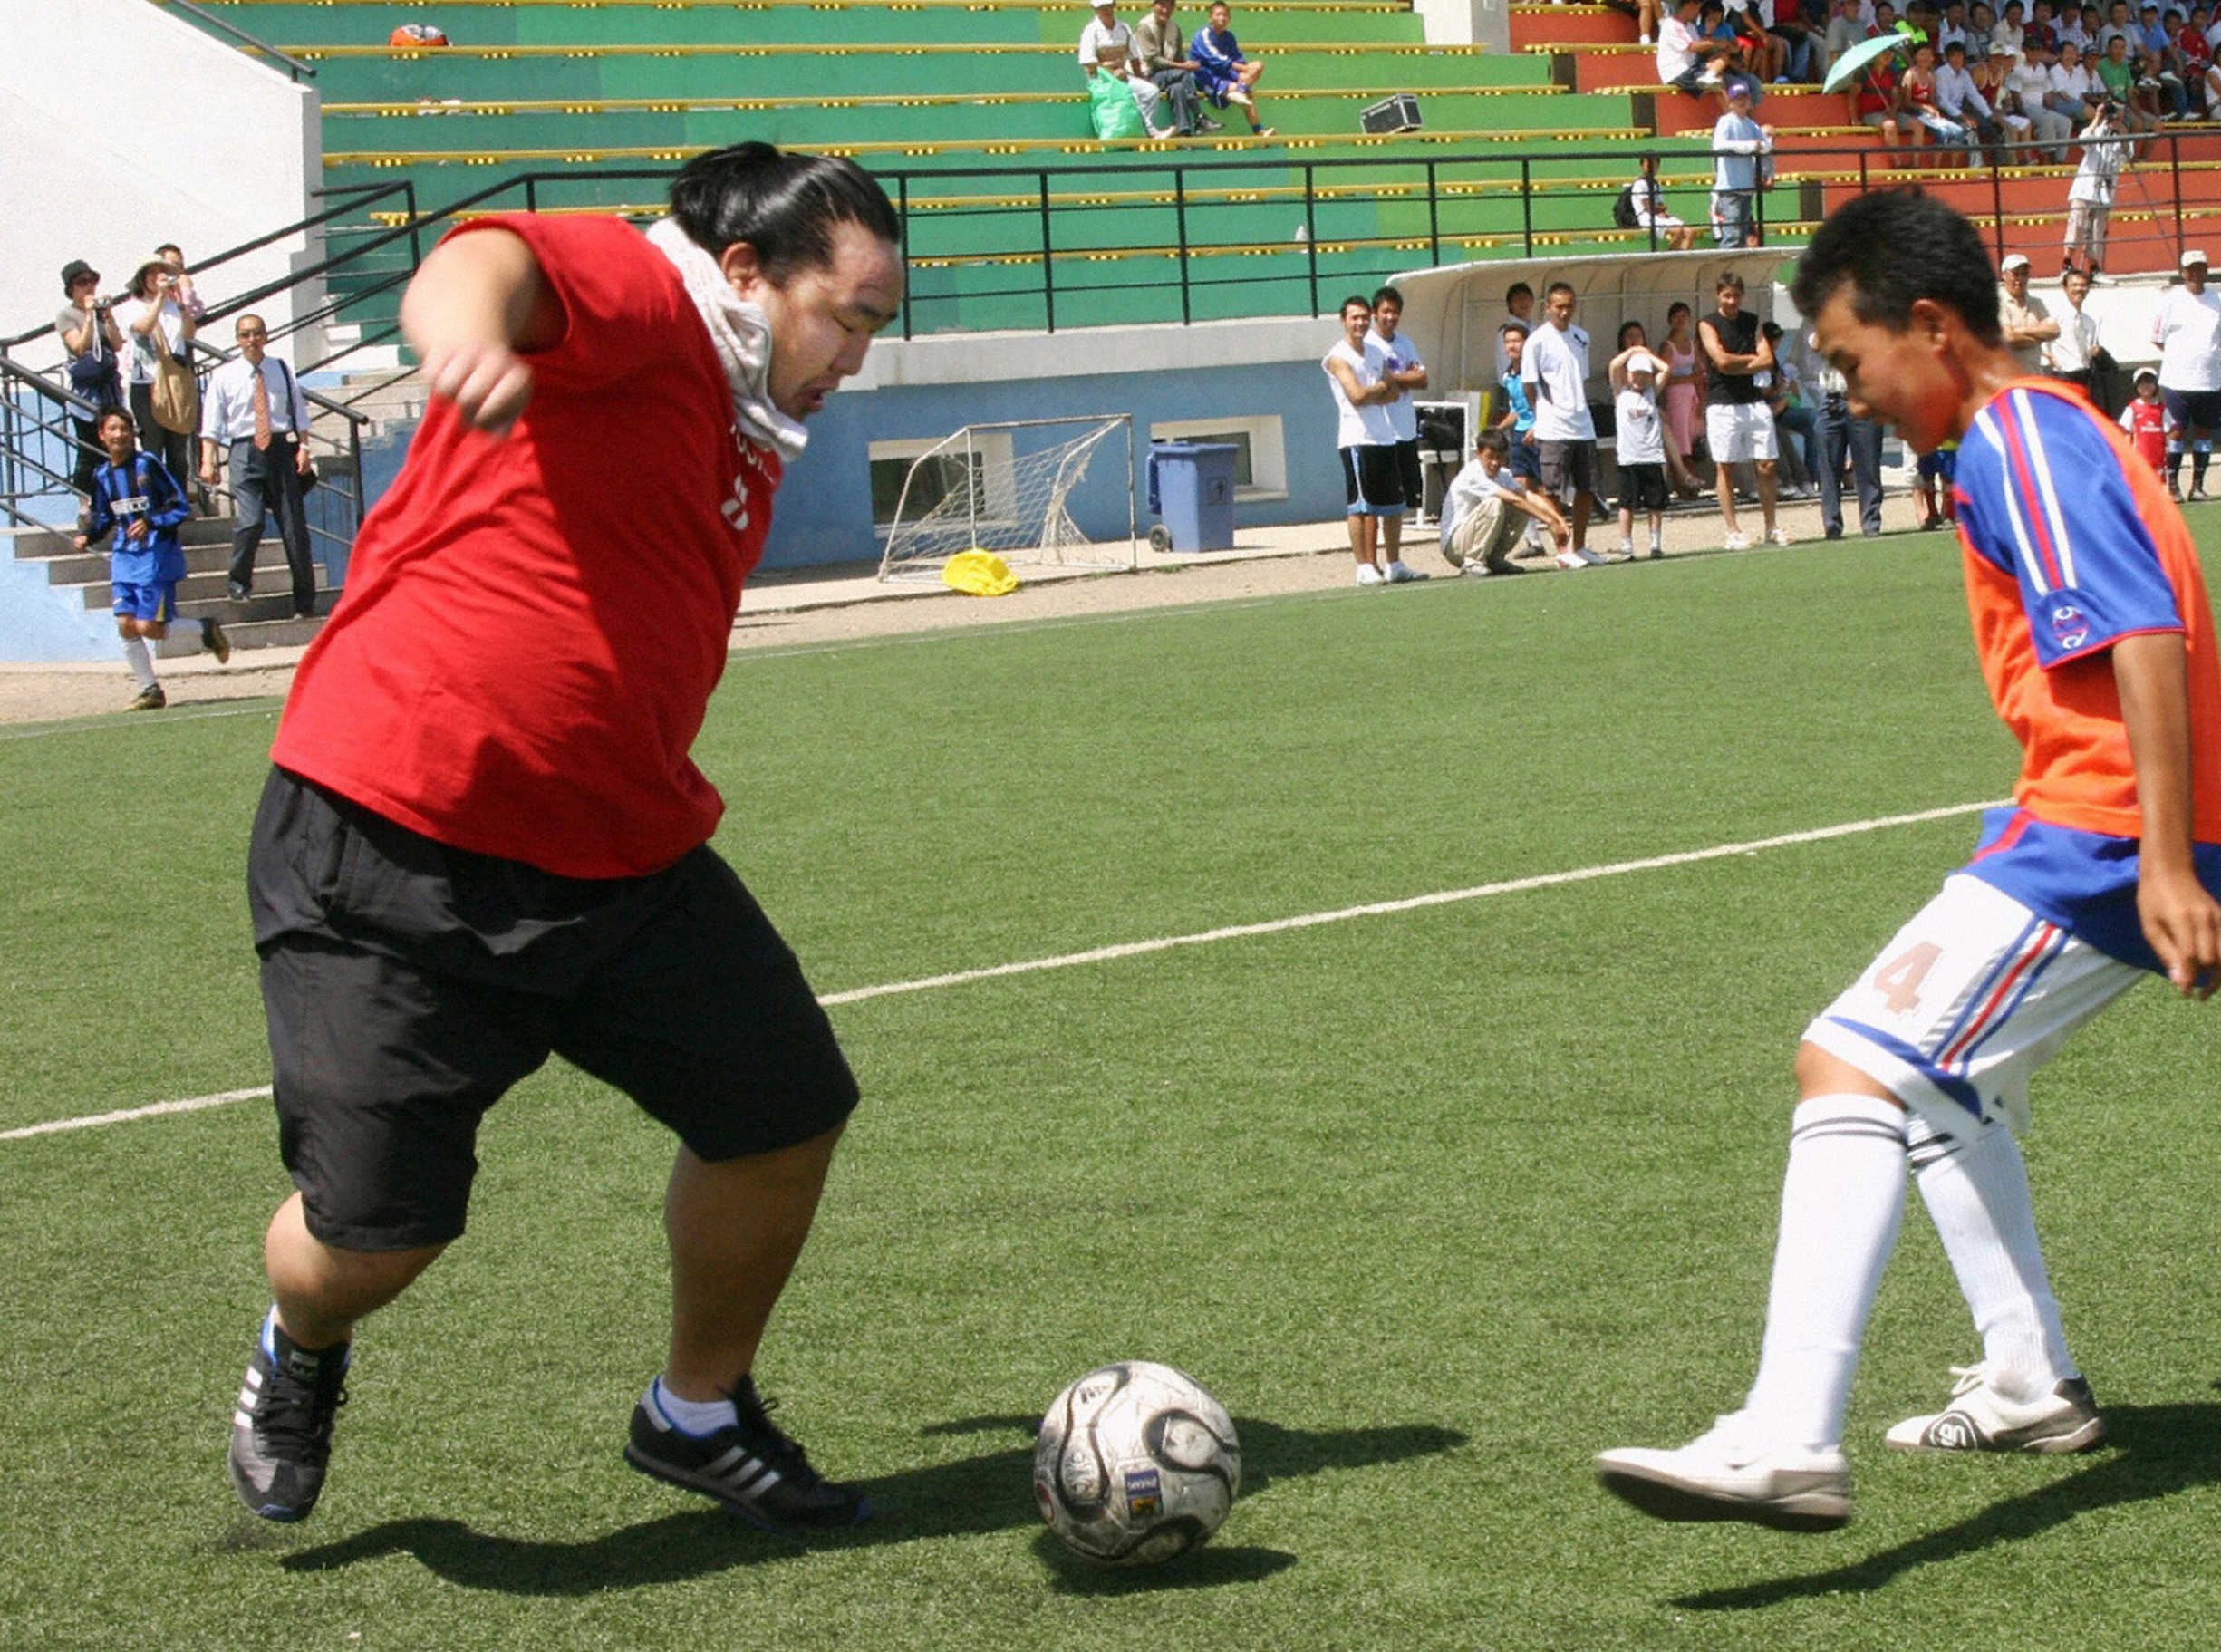 Sumo grand champion Asashoryu (L) plays soccer at a charity match in Ulan Bator, Mongolia